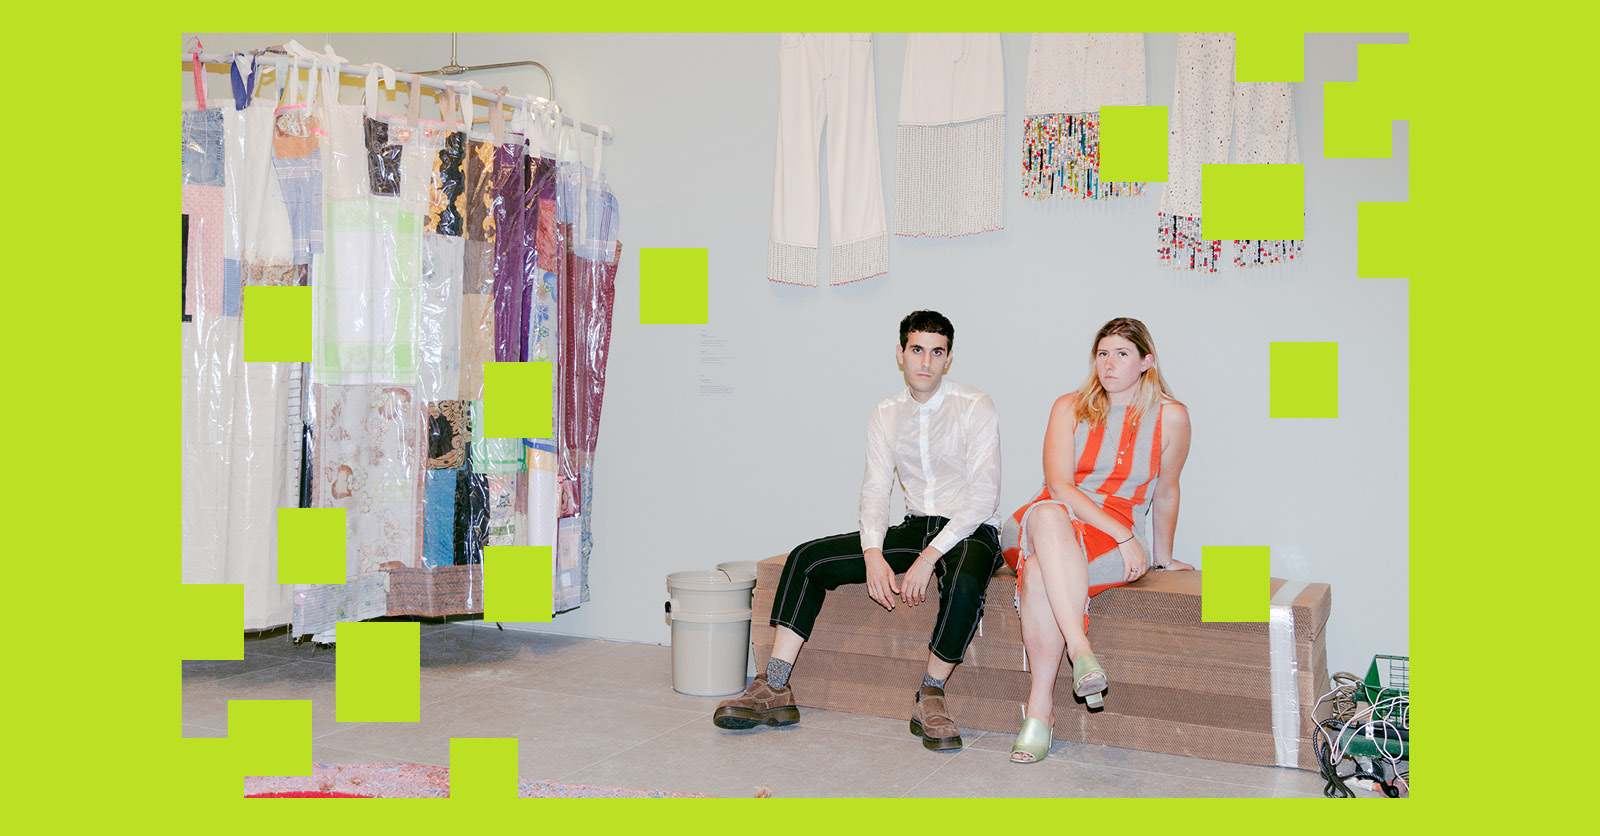 Fashion Designers Mike Eckhaus And Zoe Latta On Working Together The Creative Independent